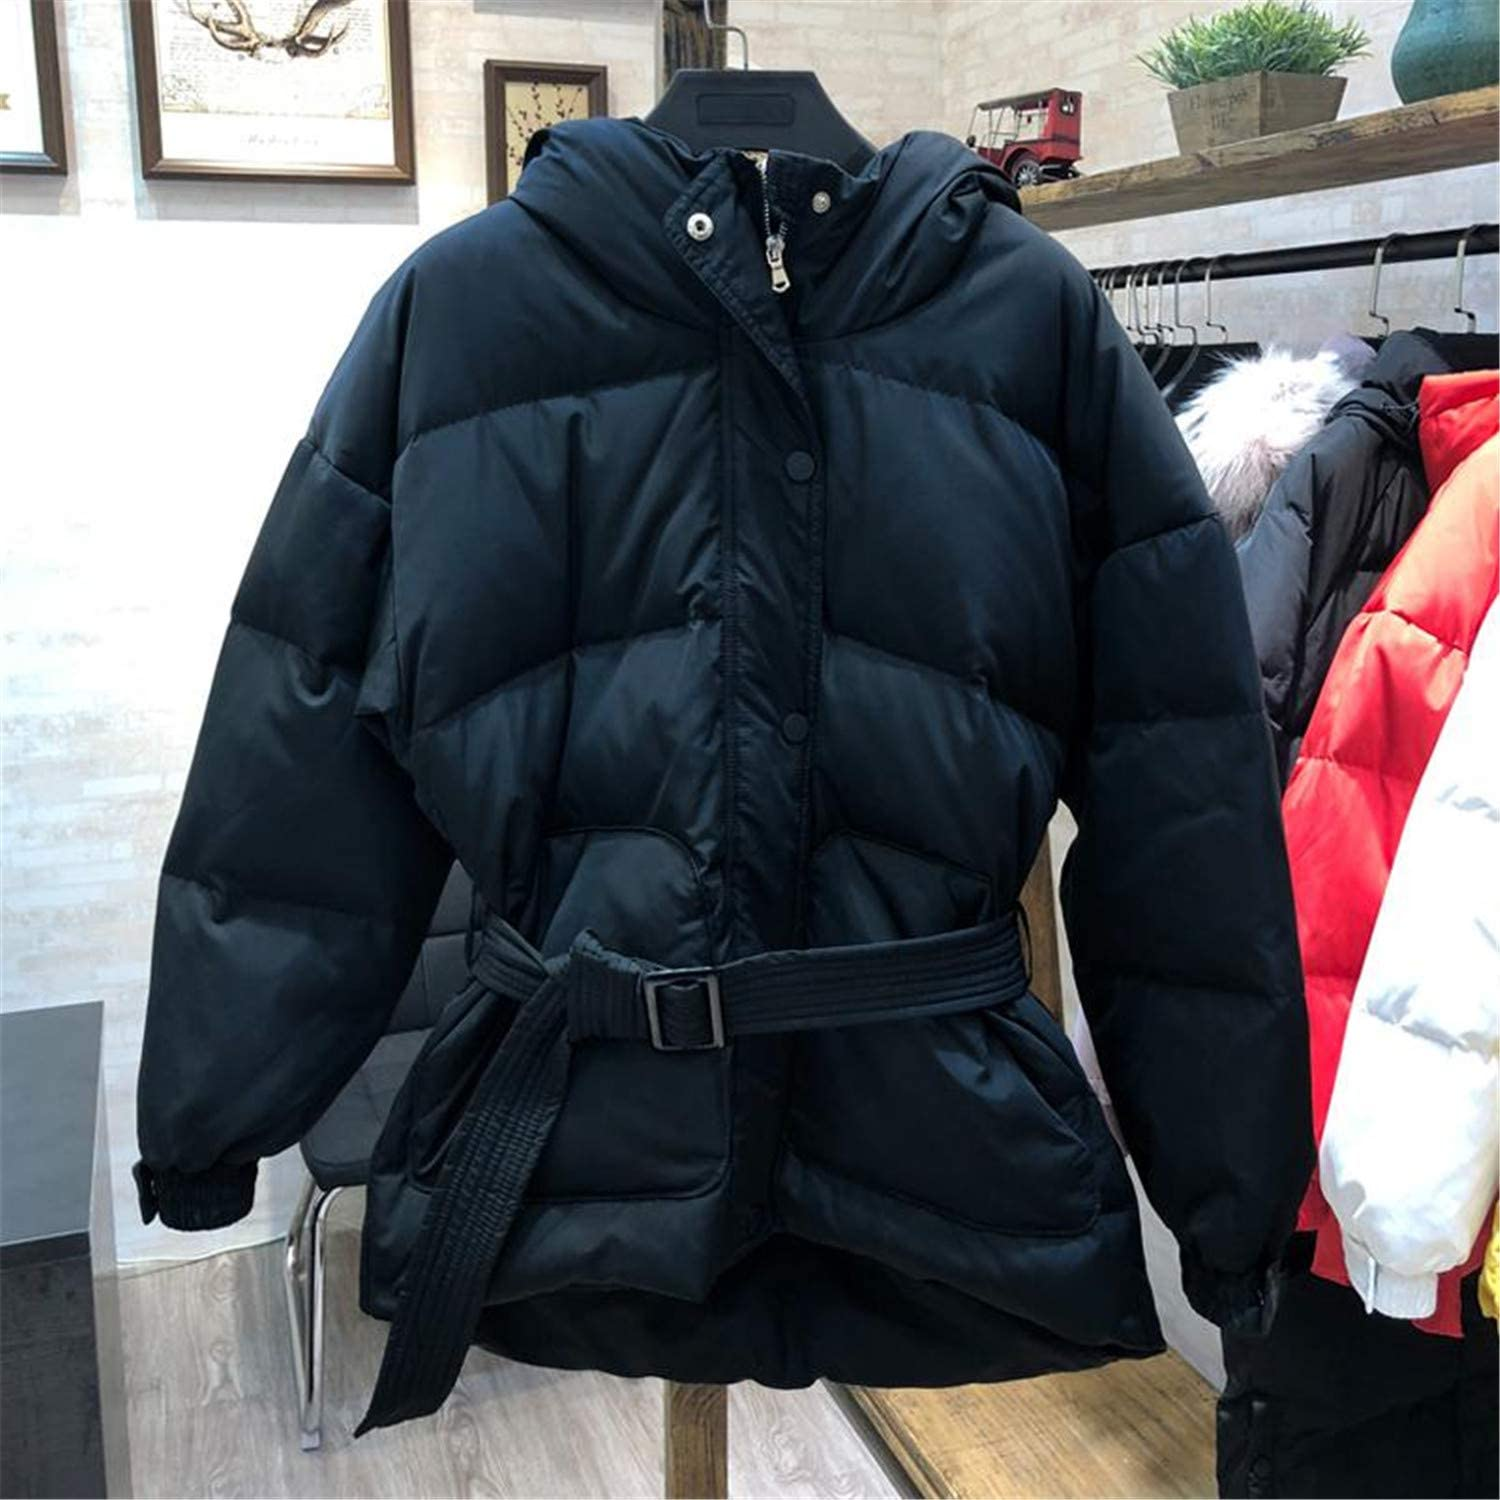 Aancy Ultra Light Down Jackets Women Winter Slim Hooded Duck Down Coats Parkas with Belt Black Pink Red Snow Outwear